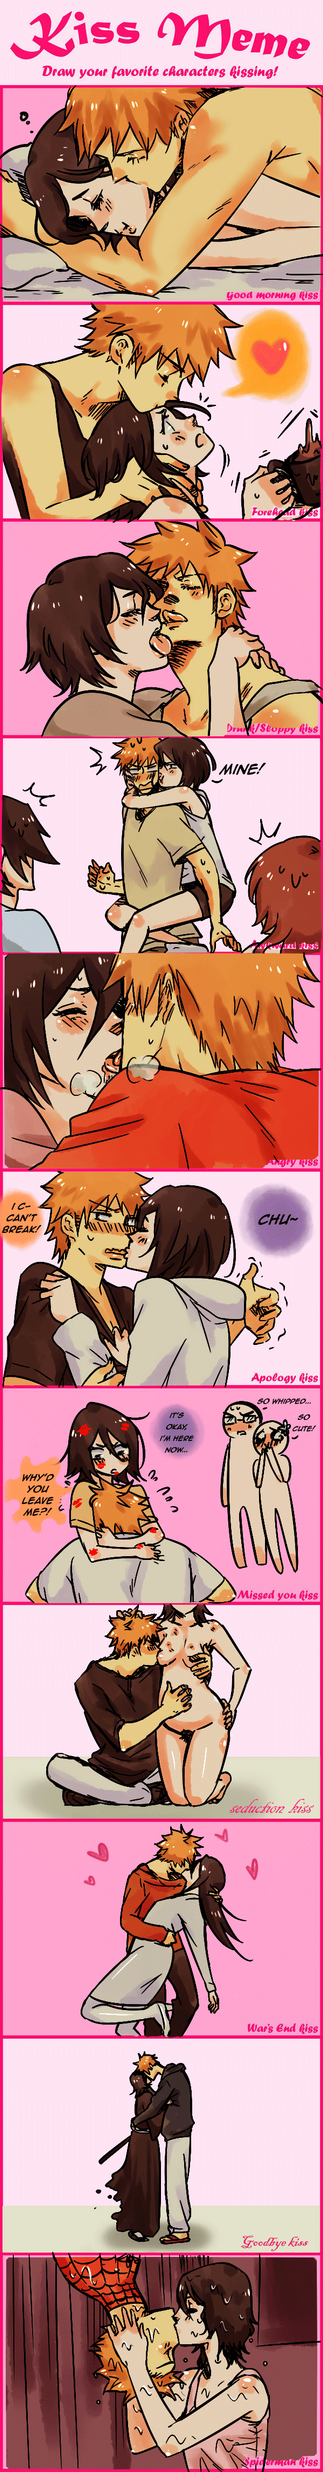 IchiRuki Kiss Meme by Pamianime